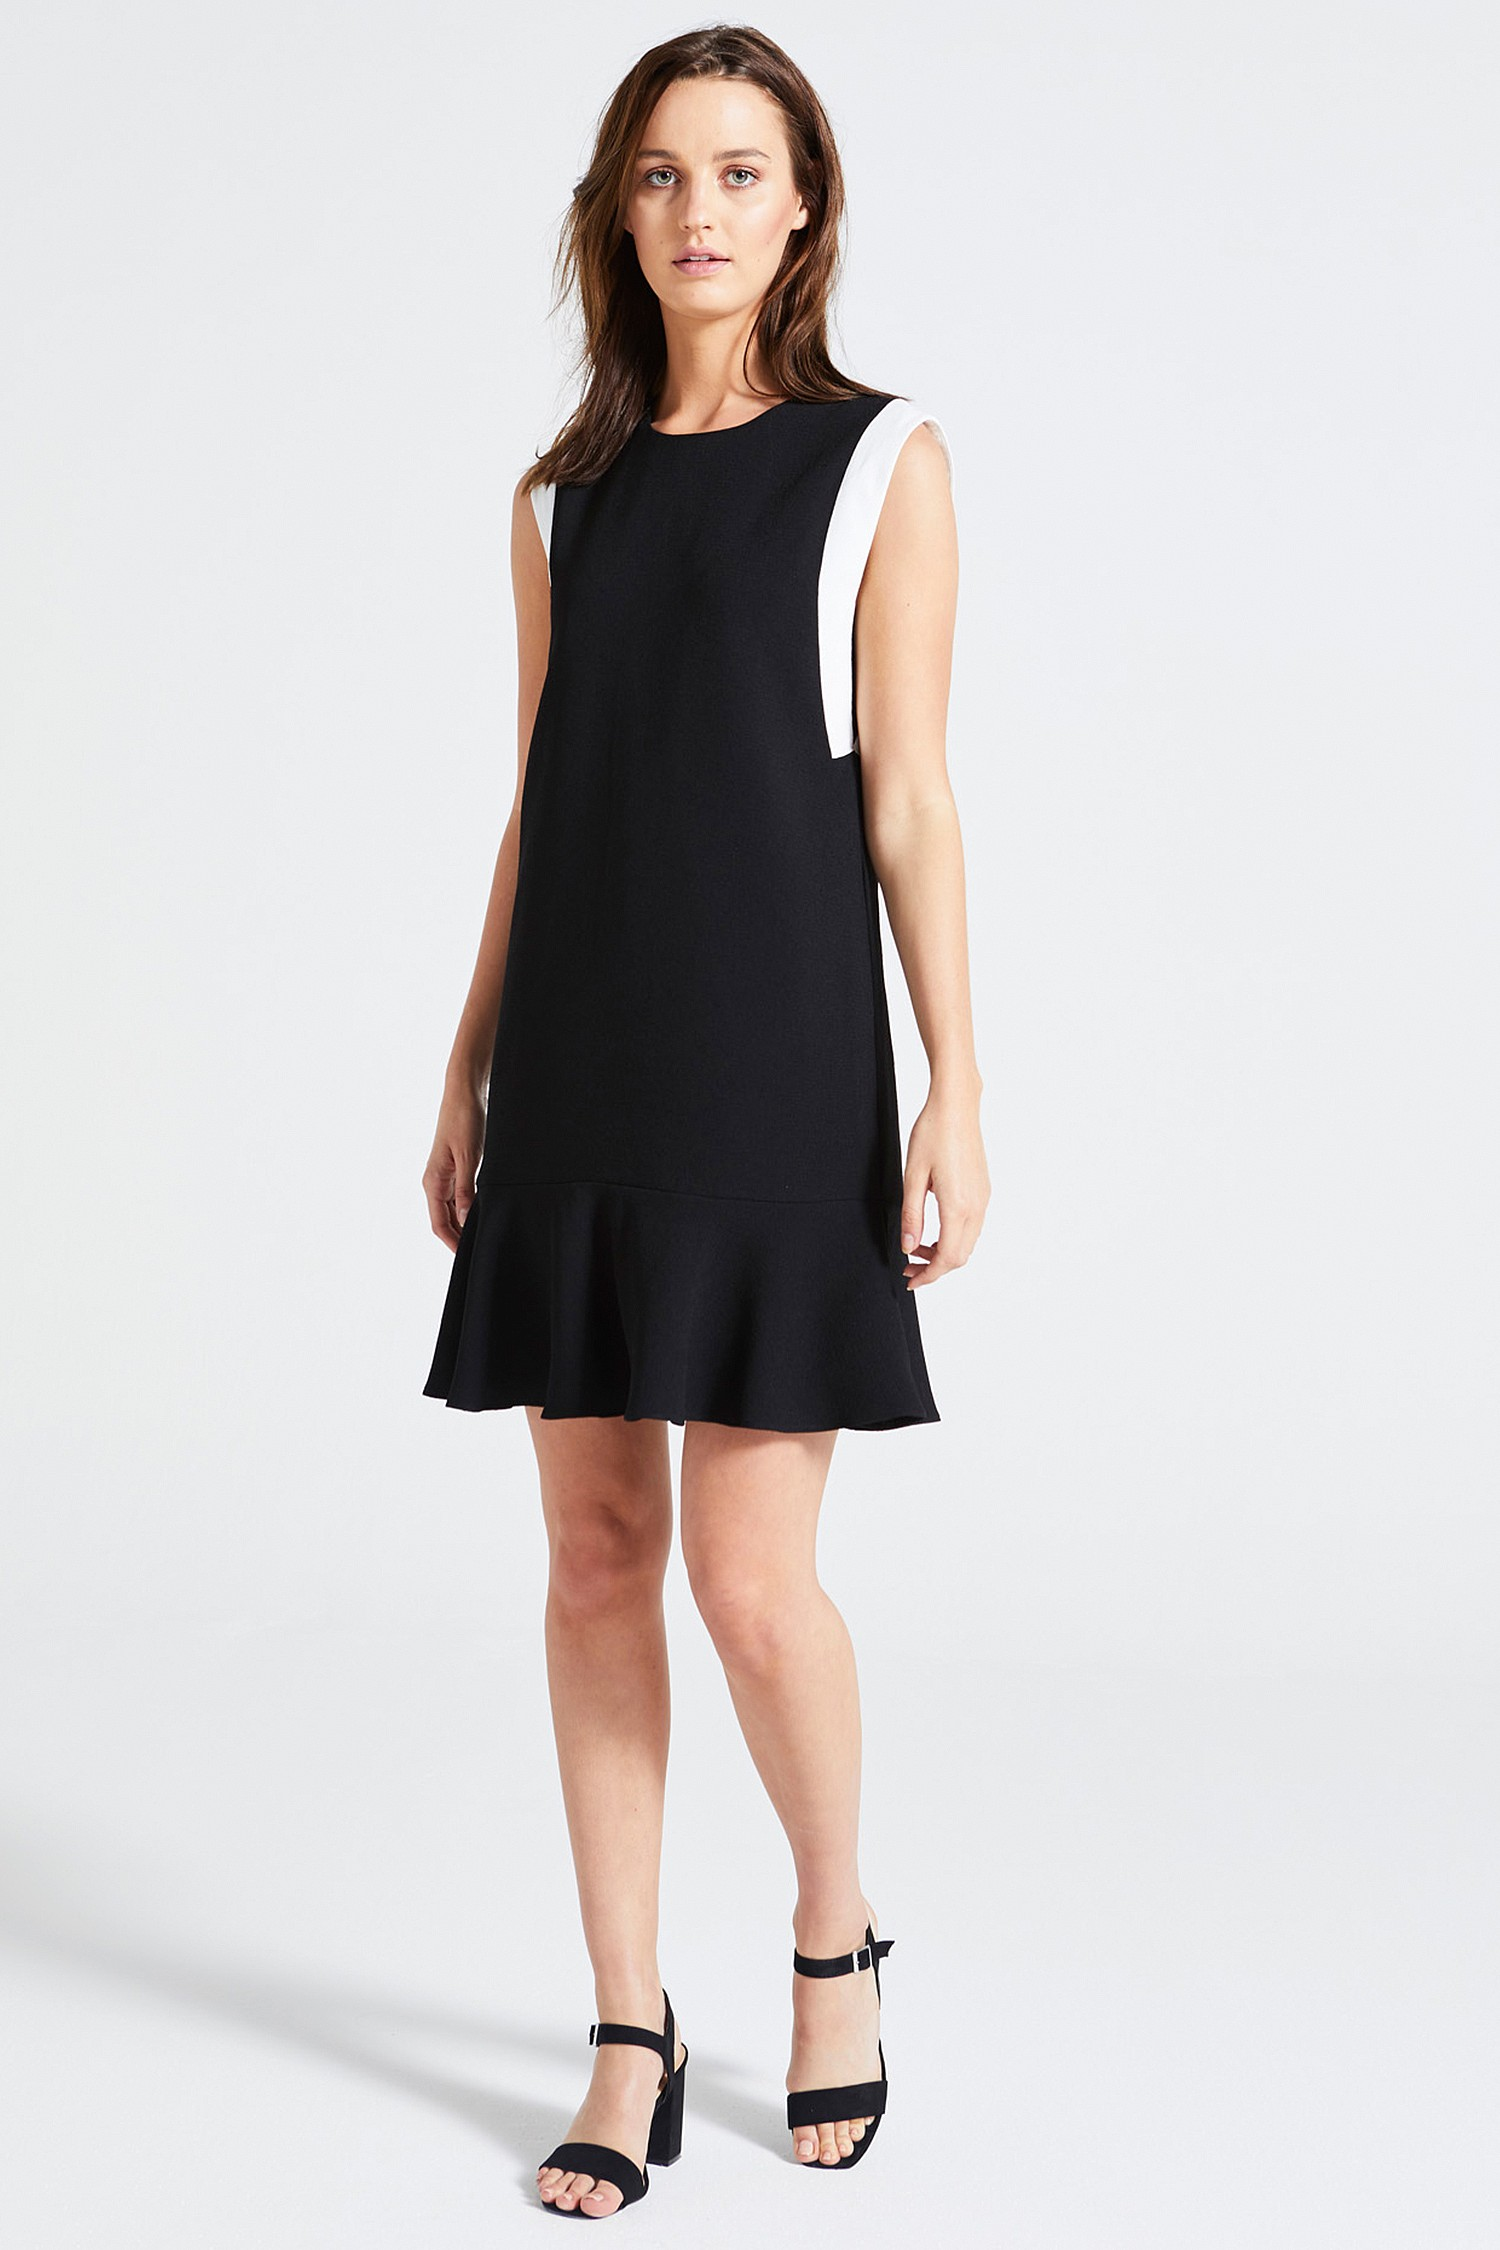 6149c7dceea Black and White Flounced Boxy Dress